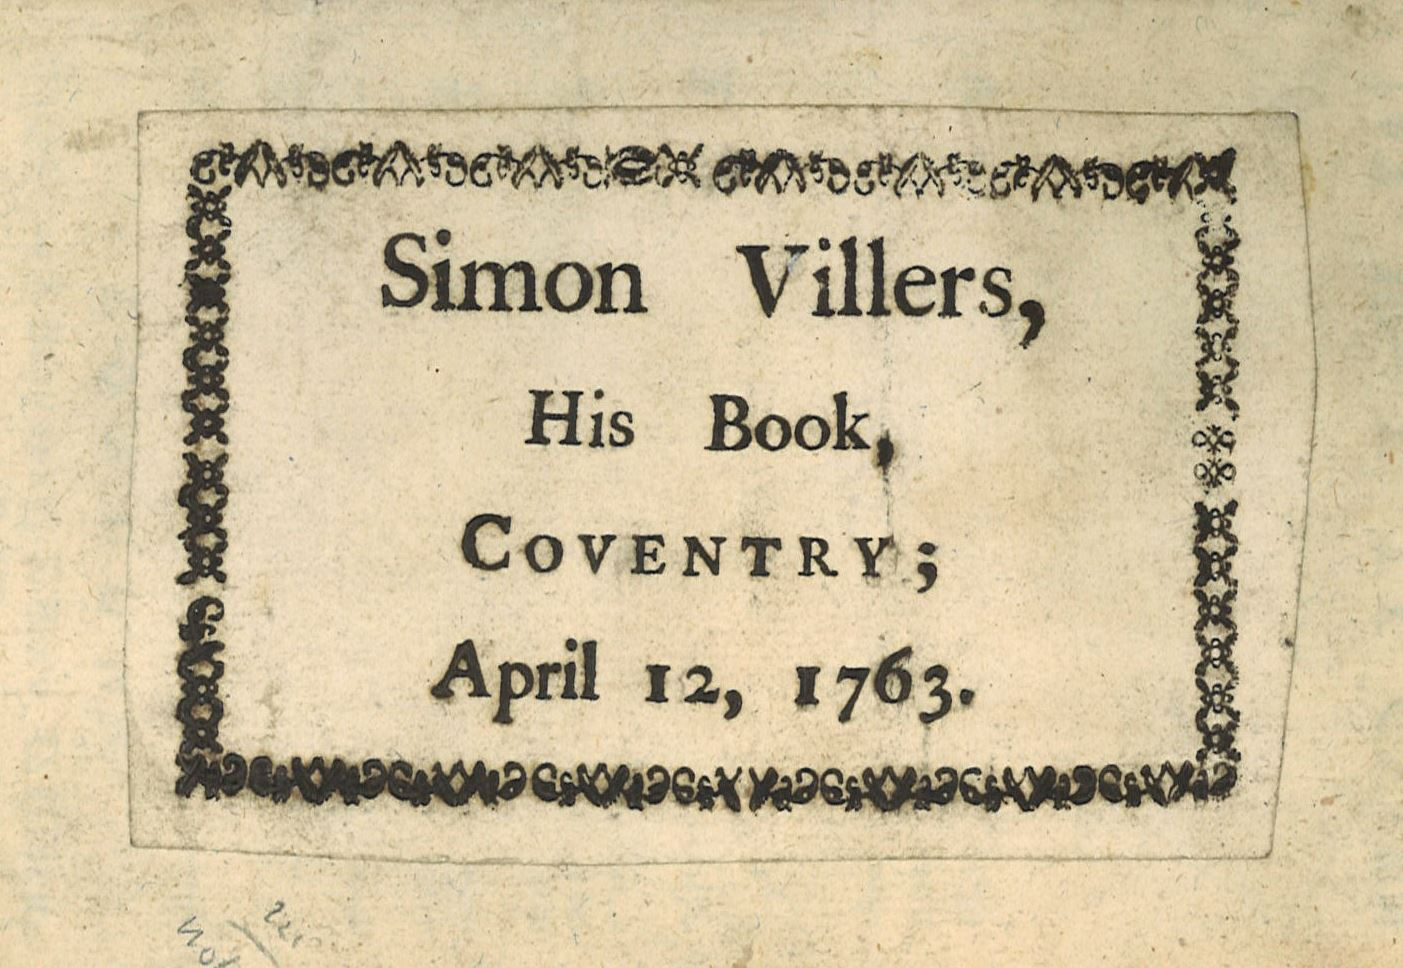 Booklabel: Simon Villers, His Book, Coventry, April 12, 1763, Pasted